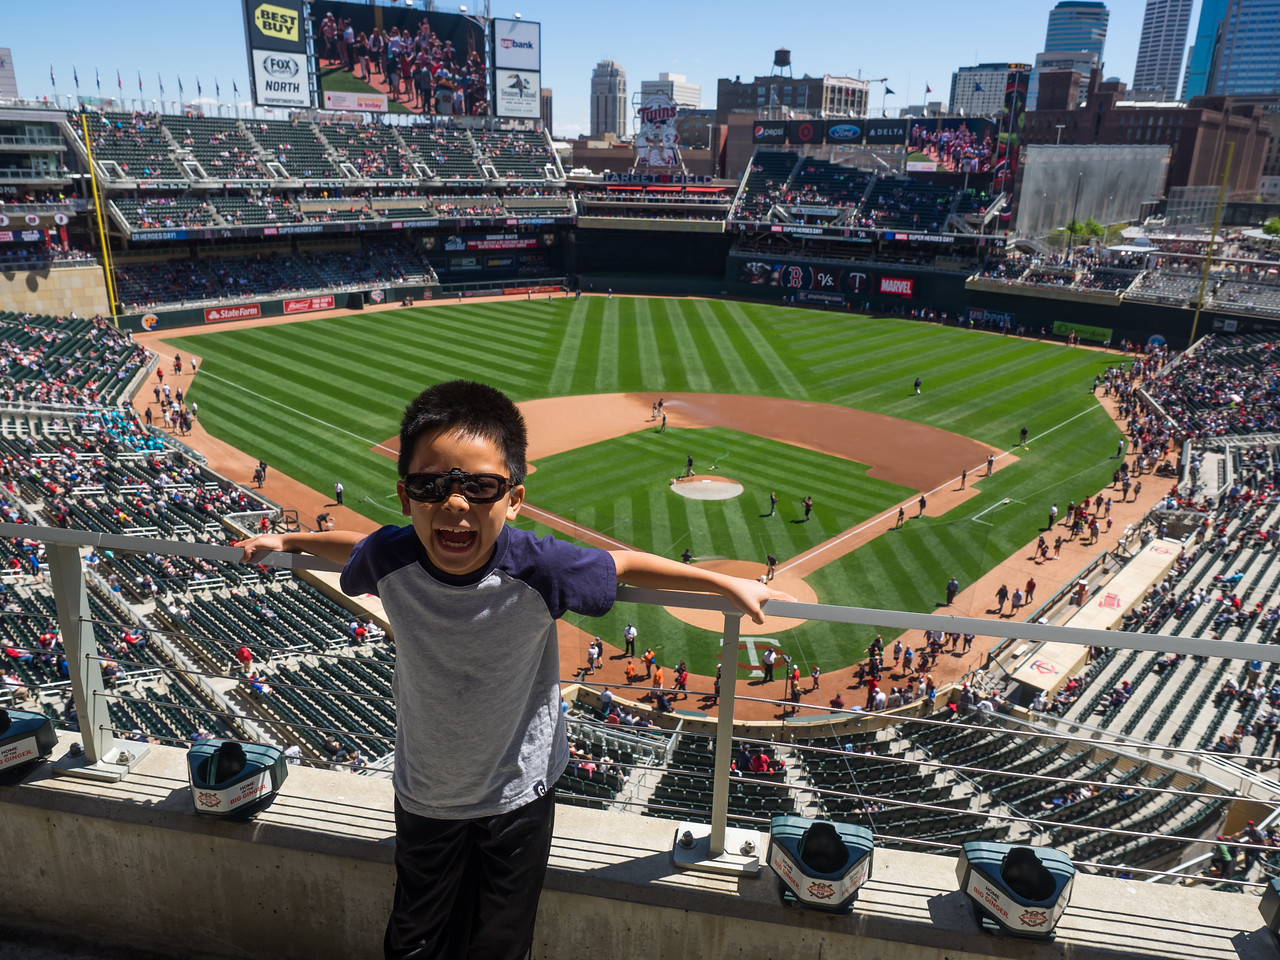 Nolan at Twins vs Red Sox, Target Field